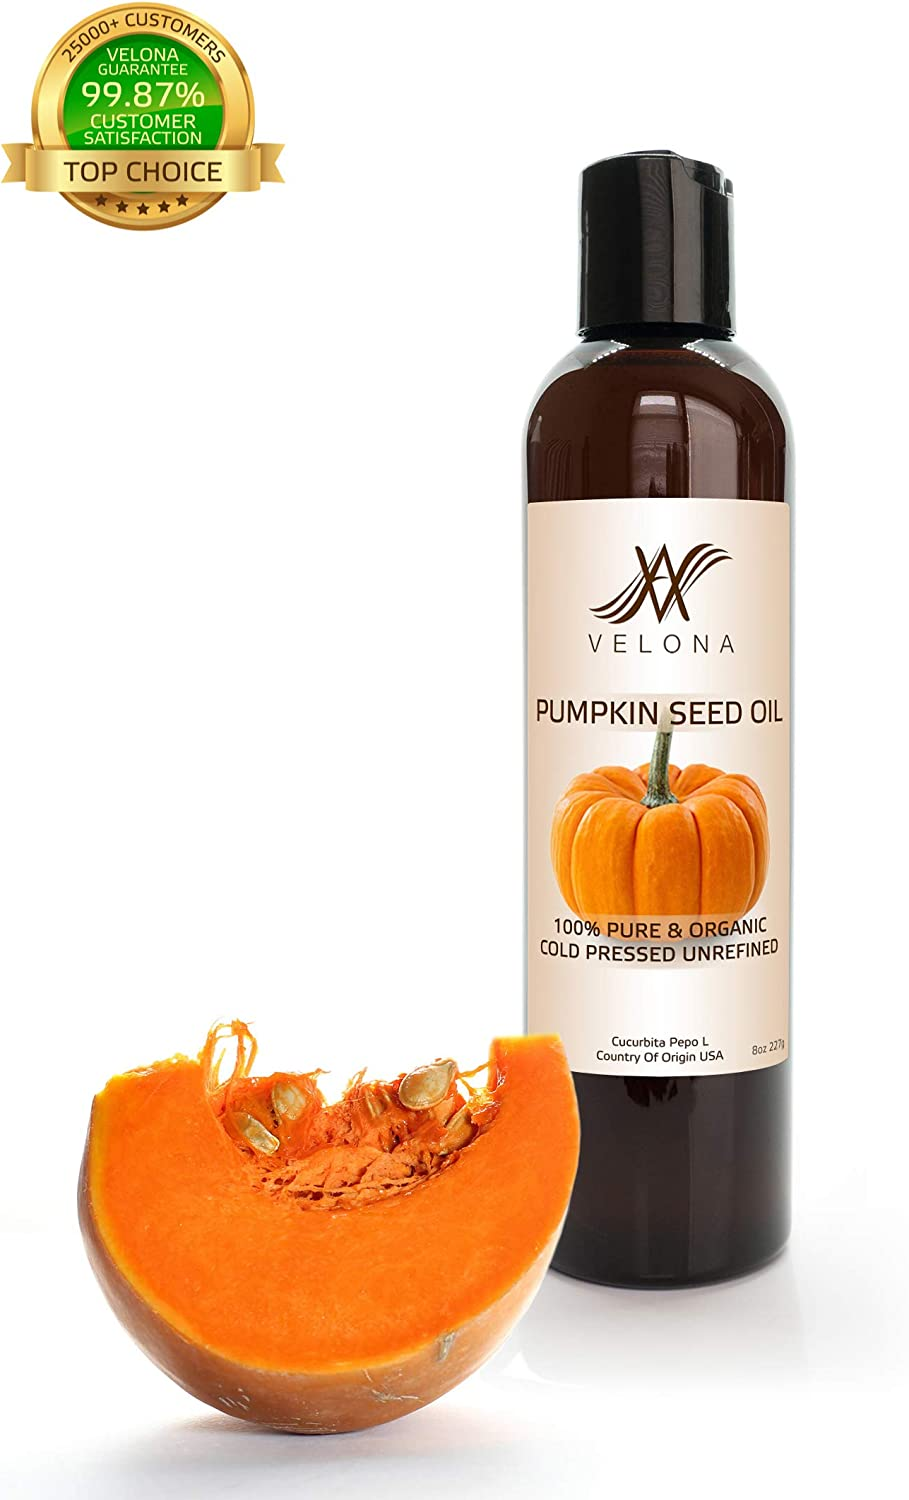 100% Organic Pumpkin Seed Oil by Velona | All Natural for Hair, Body and Skin Care | Unrefined, Cold Pressed | Size: 8 OZ